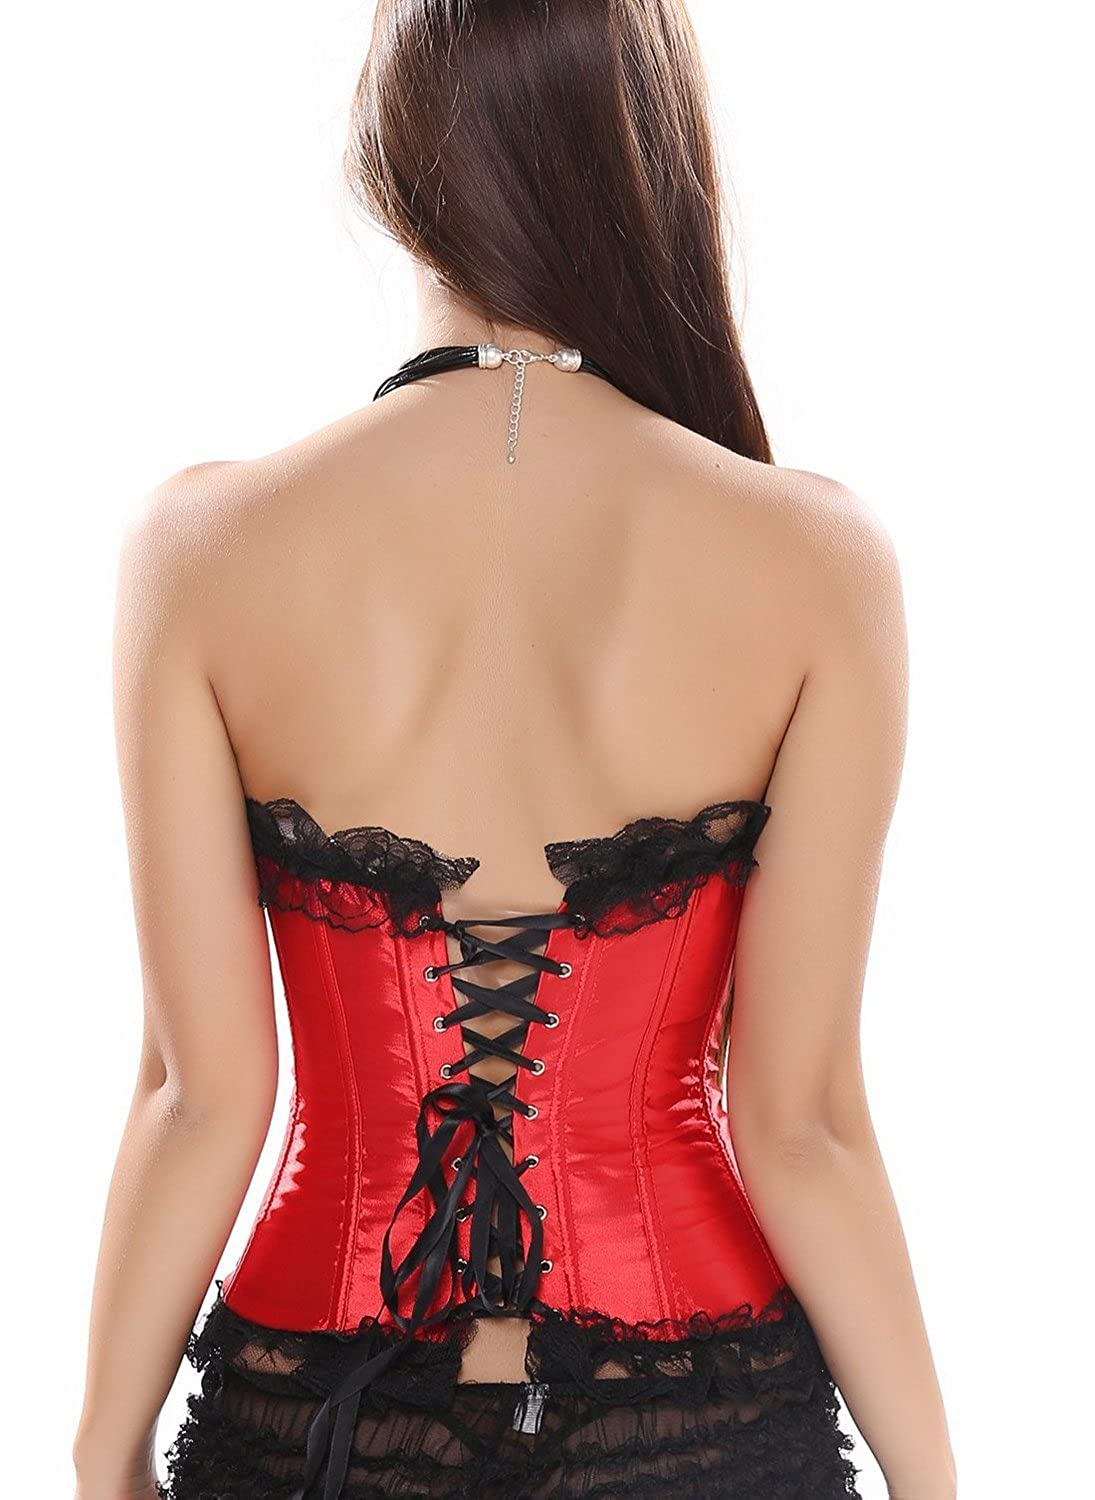 SODAO Women's Sexy Lace Up Corset Court Bustier Corsets